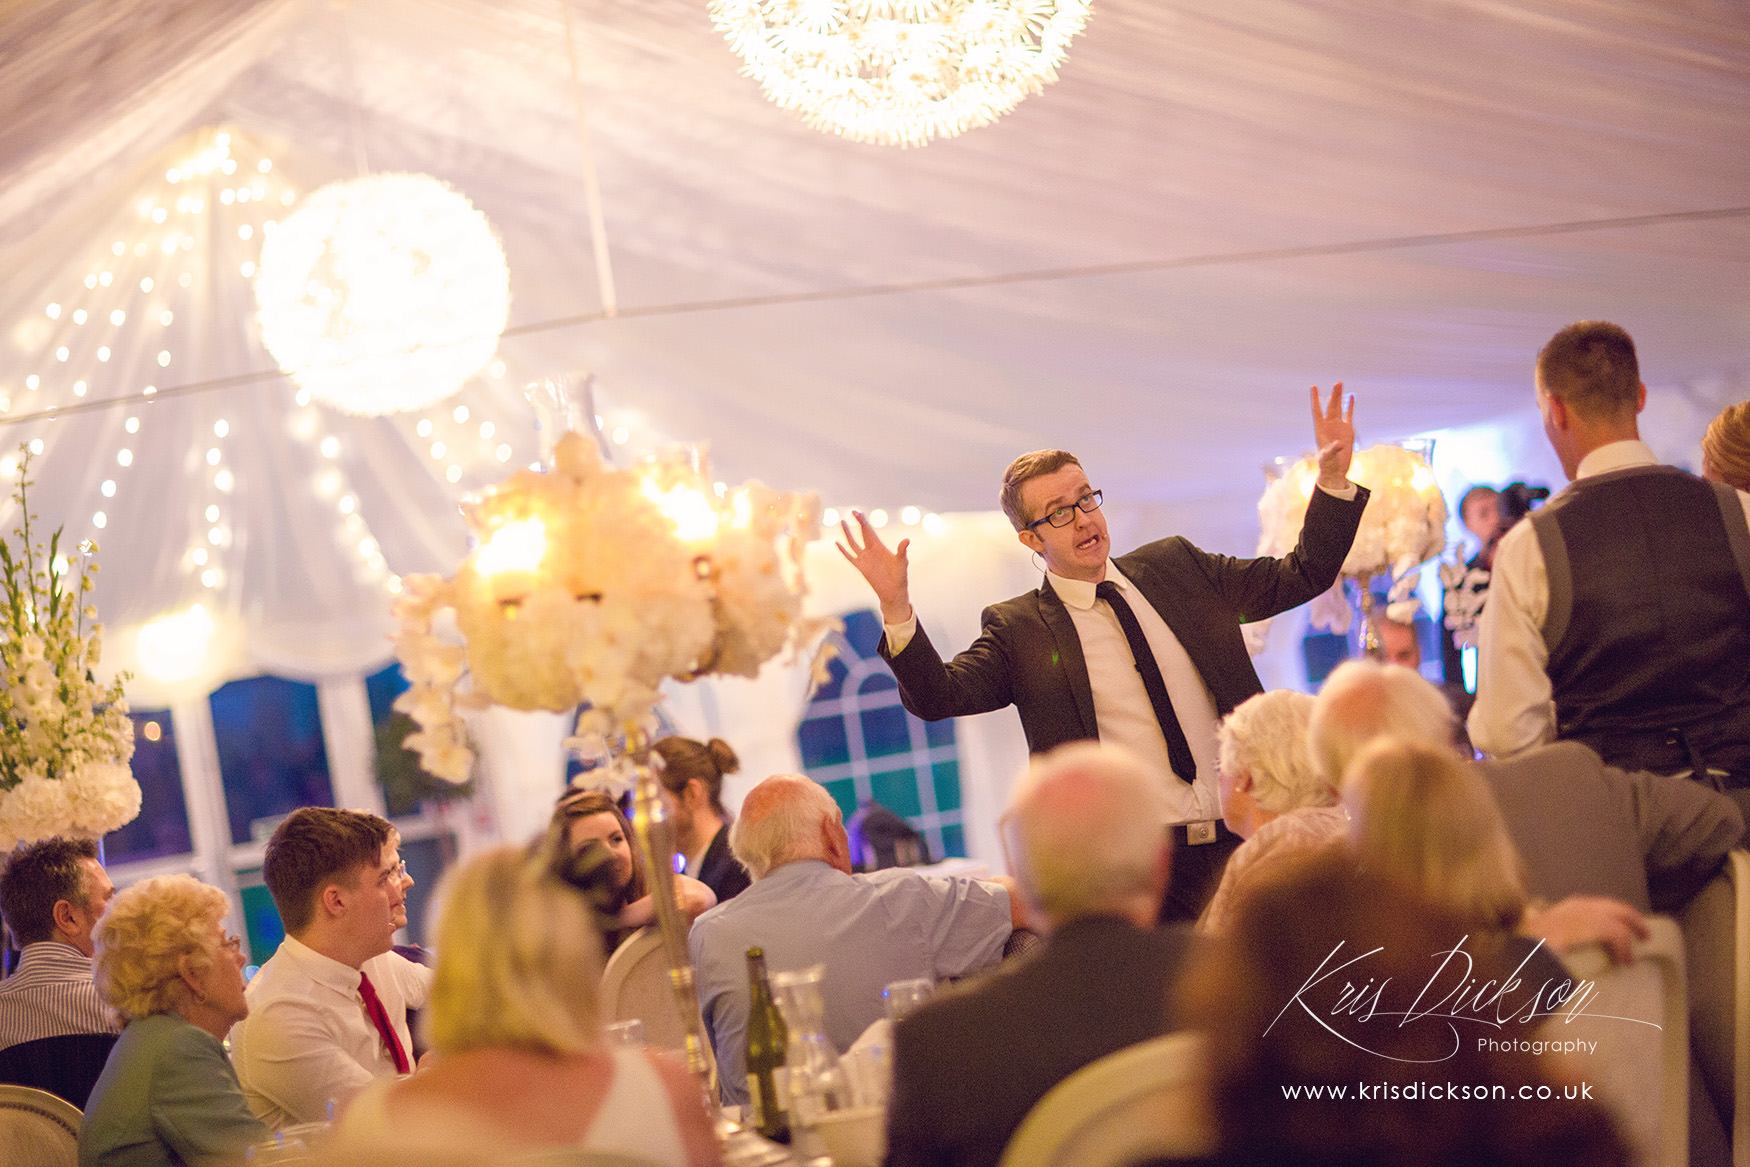 Kris Dickson Photography-1499